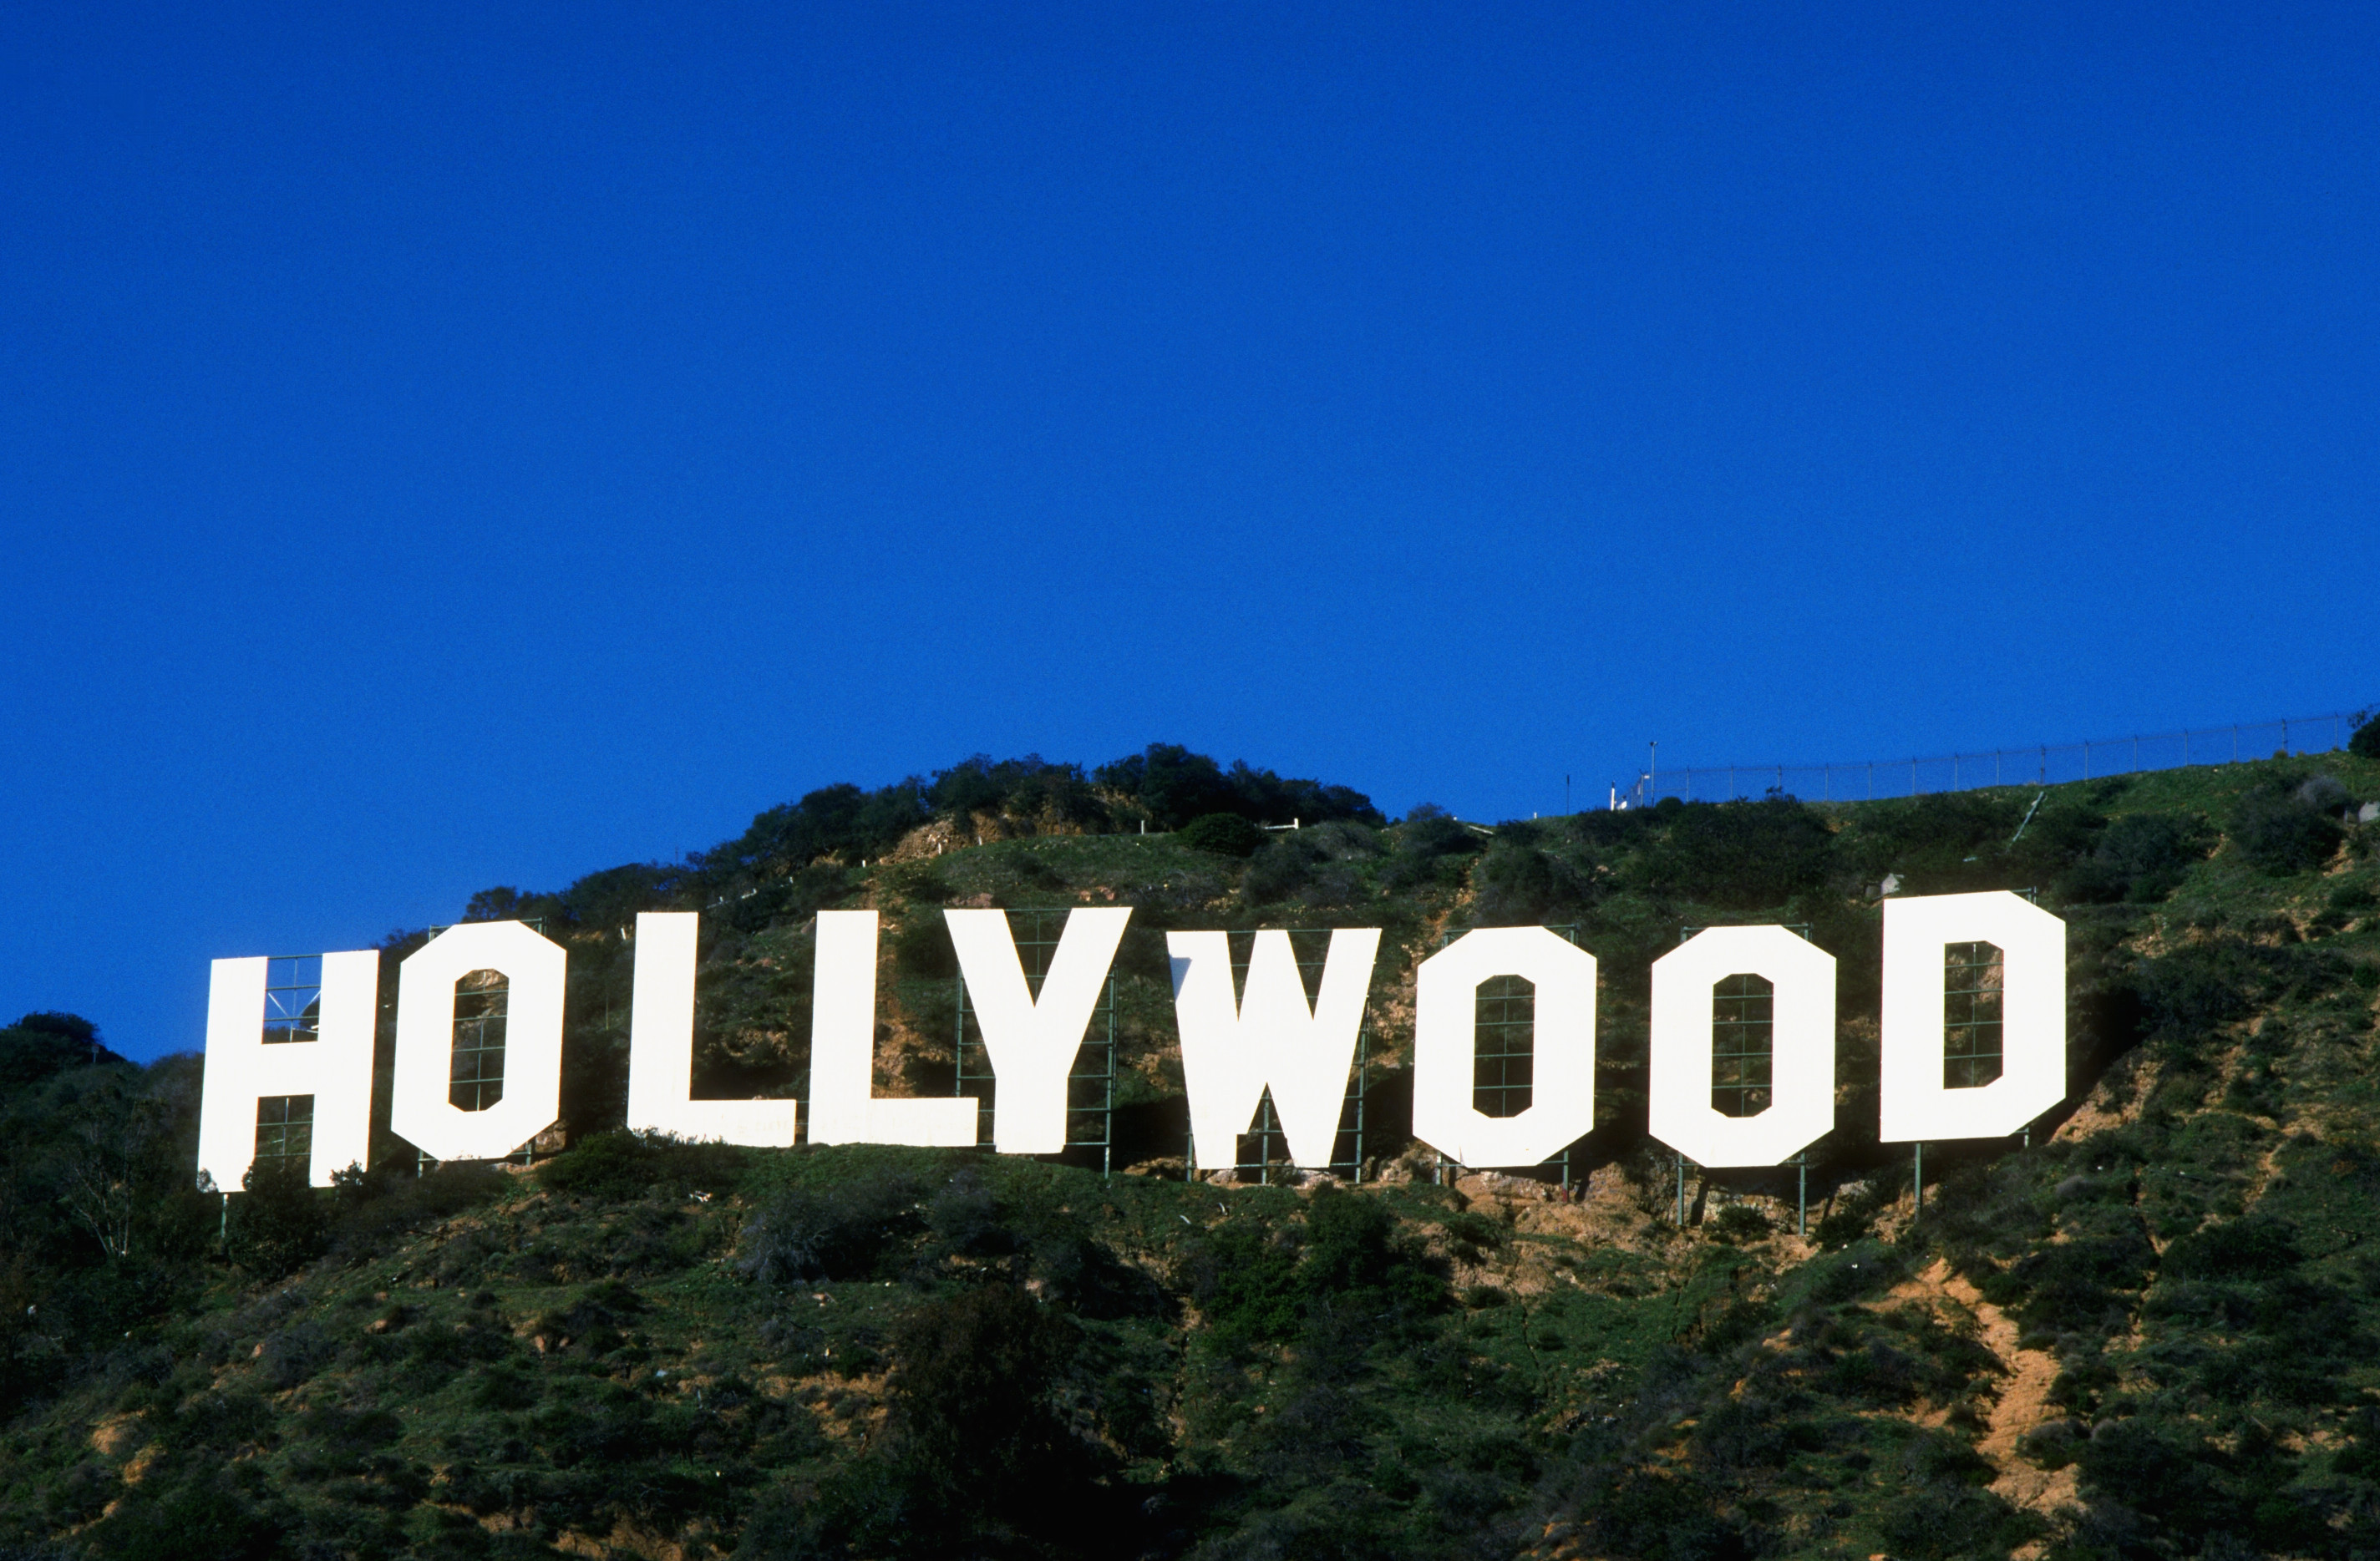 california hollywood sign The lack of diversity in the film industry